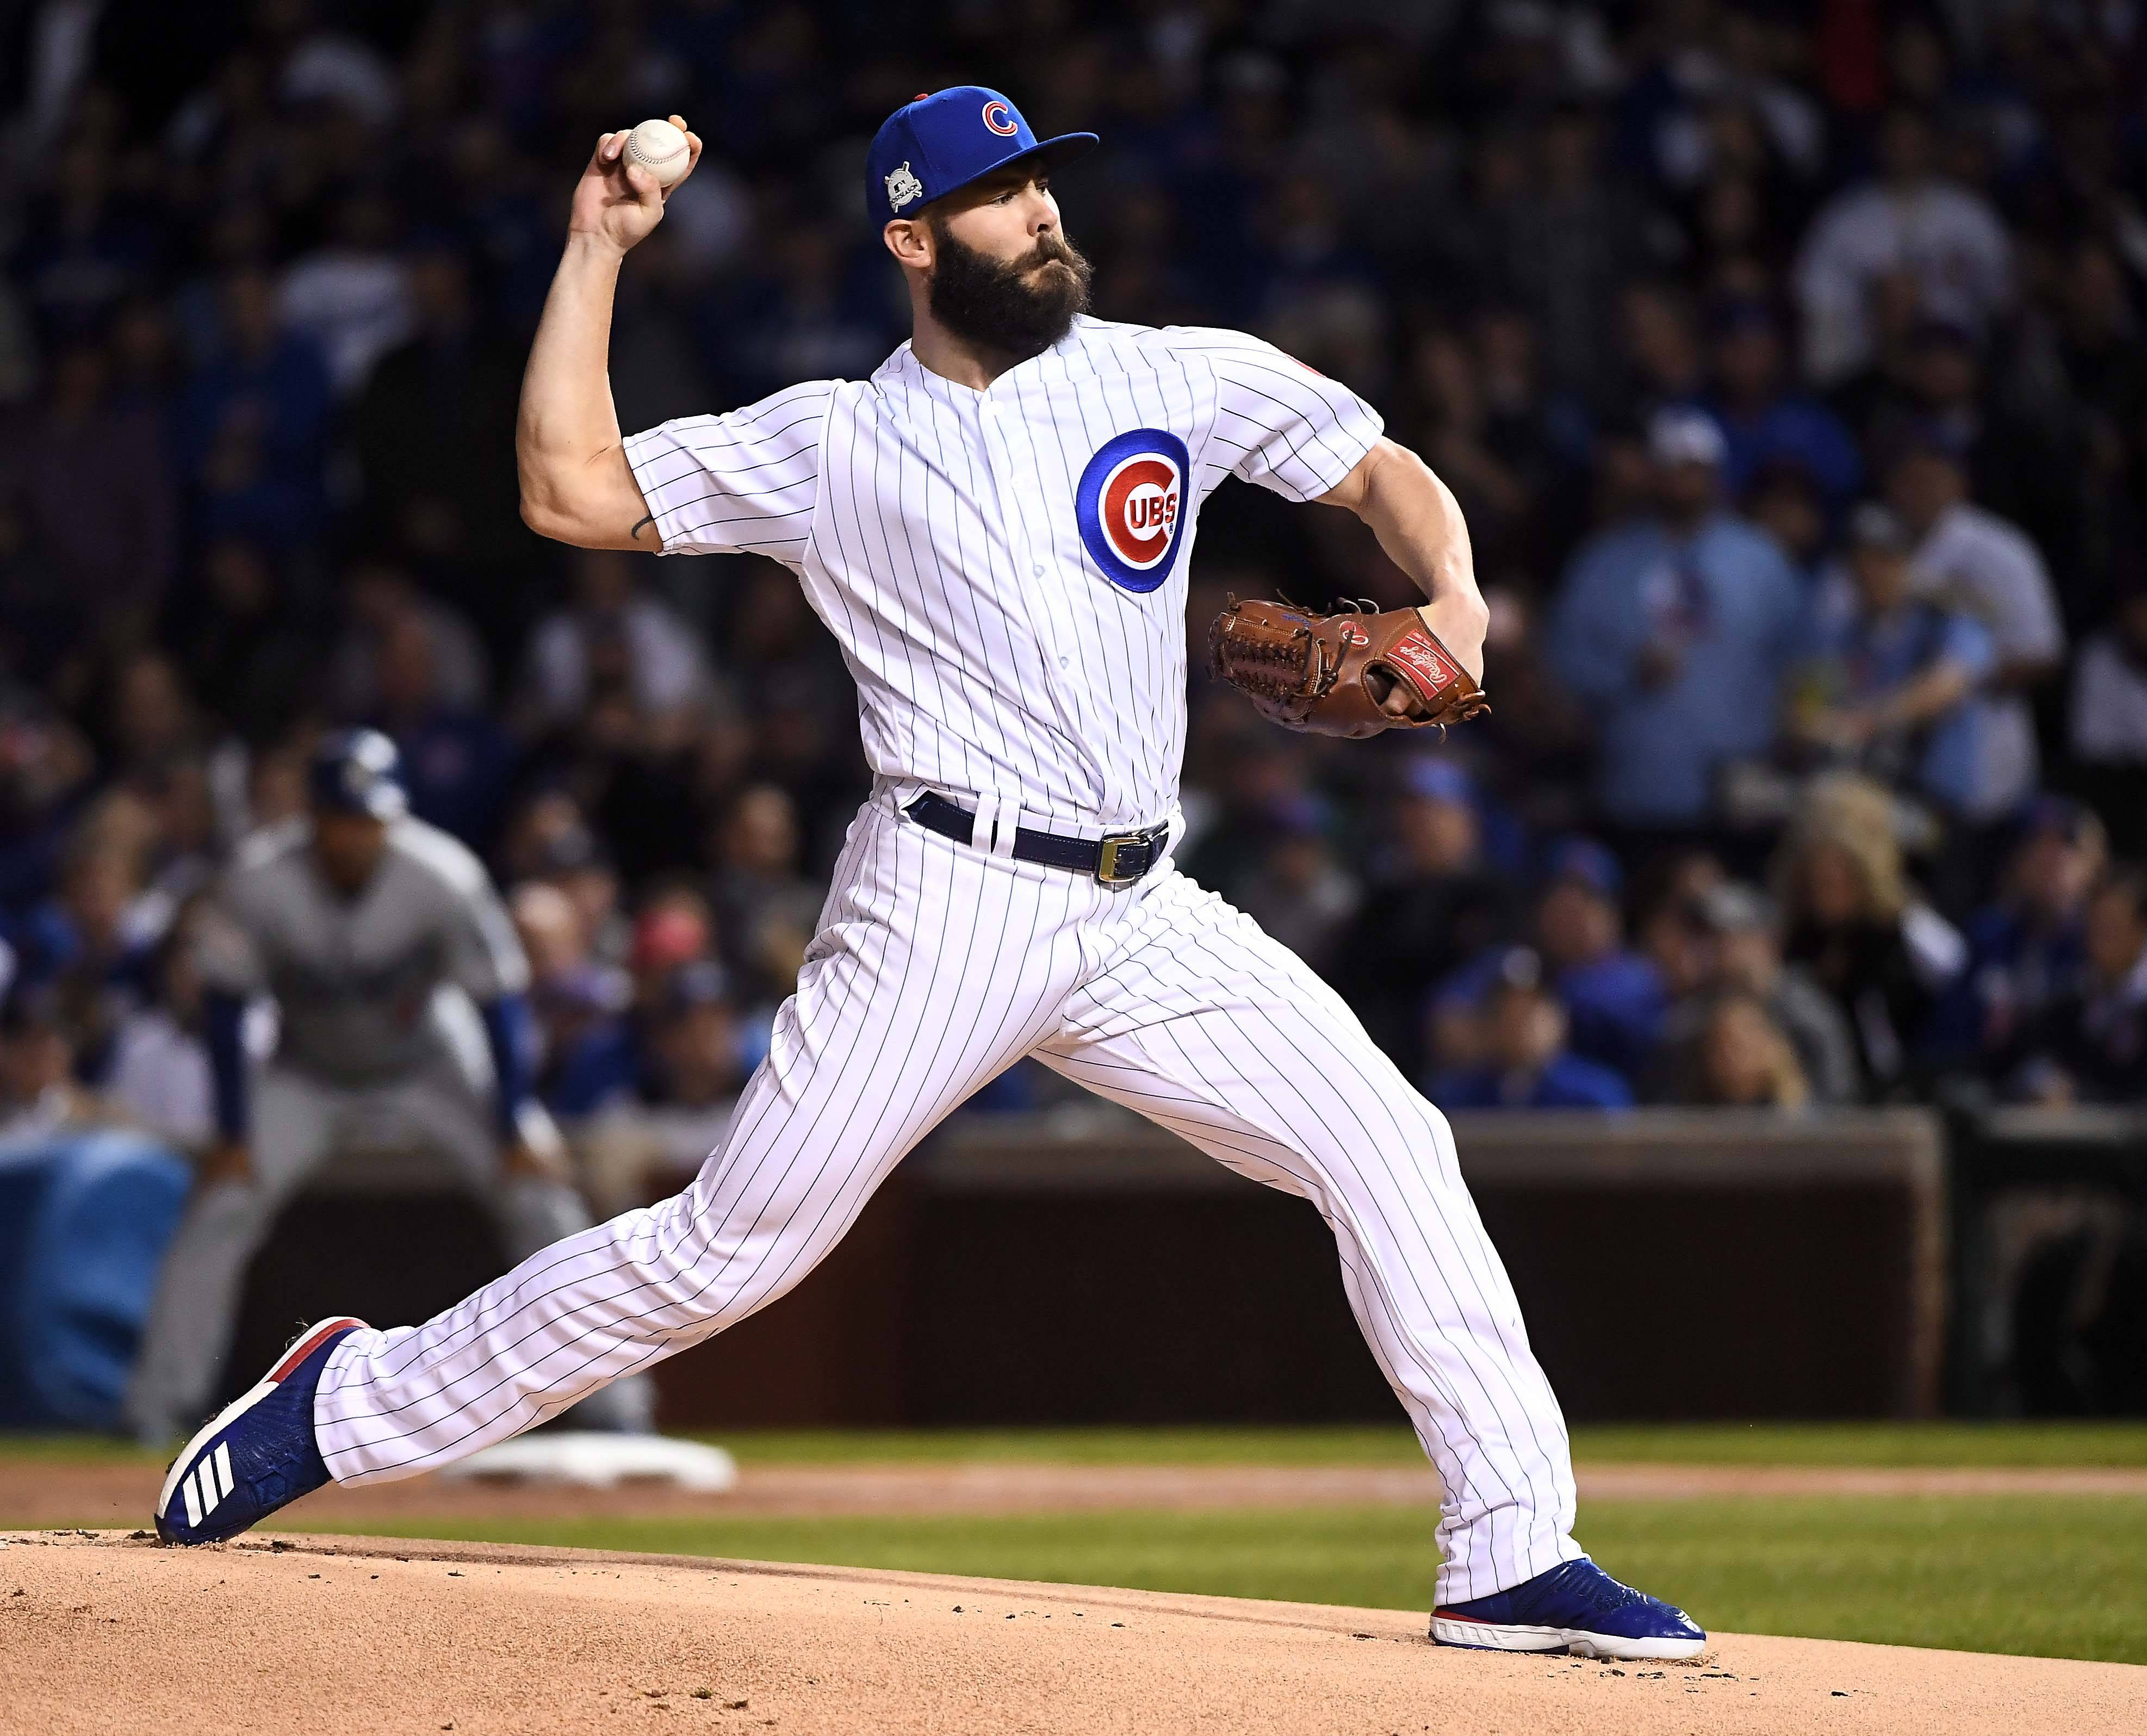 The Cubs needed a big start from Jake Arrieta Wednesday night, and the veteran right-hander delivered. Arrieta held the Dodgers to 1 run in 6⅓ innings and the Cubs won 3-2 in Game 4 of the NLCS at Wrigley Field in Chicago.